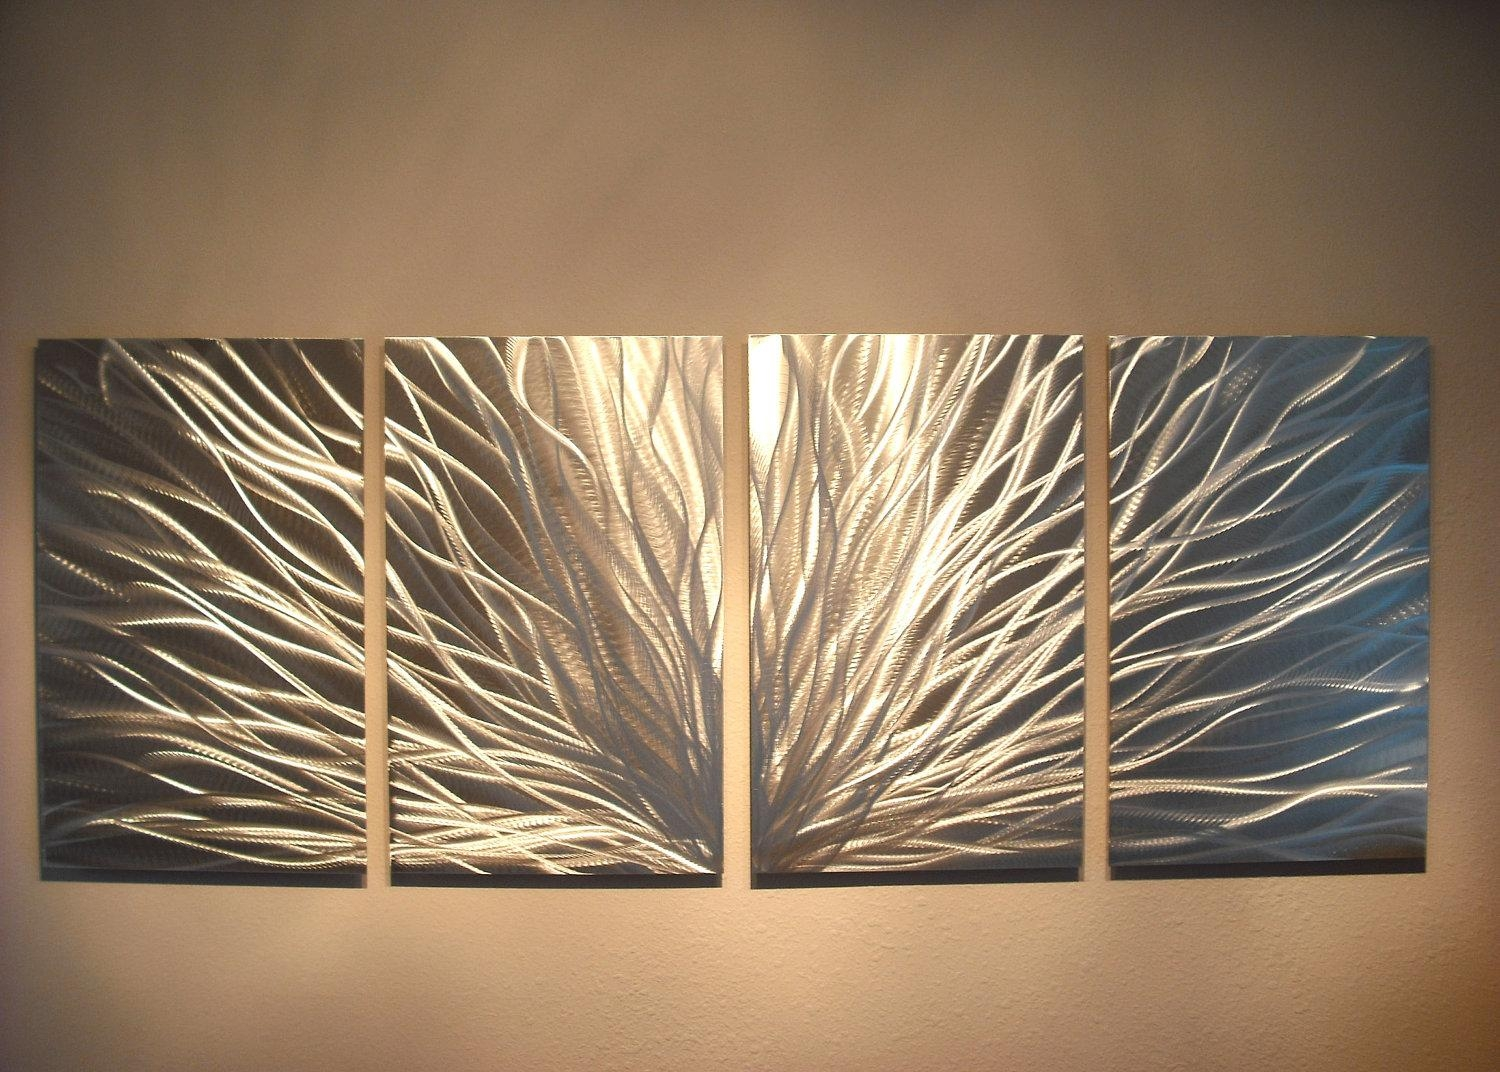 Metal Wall Art Decor Abstract Aluminum Contemporary Modern Inside Metal Wall Art (View 16 of 20)